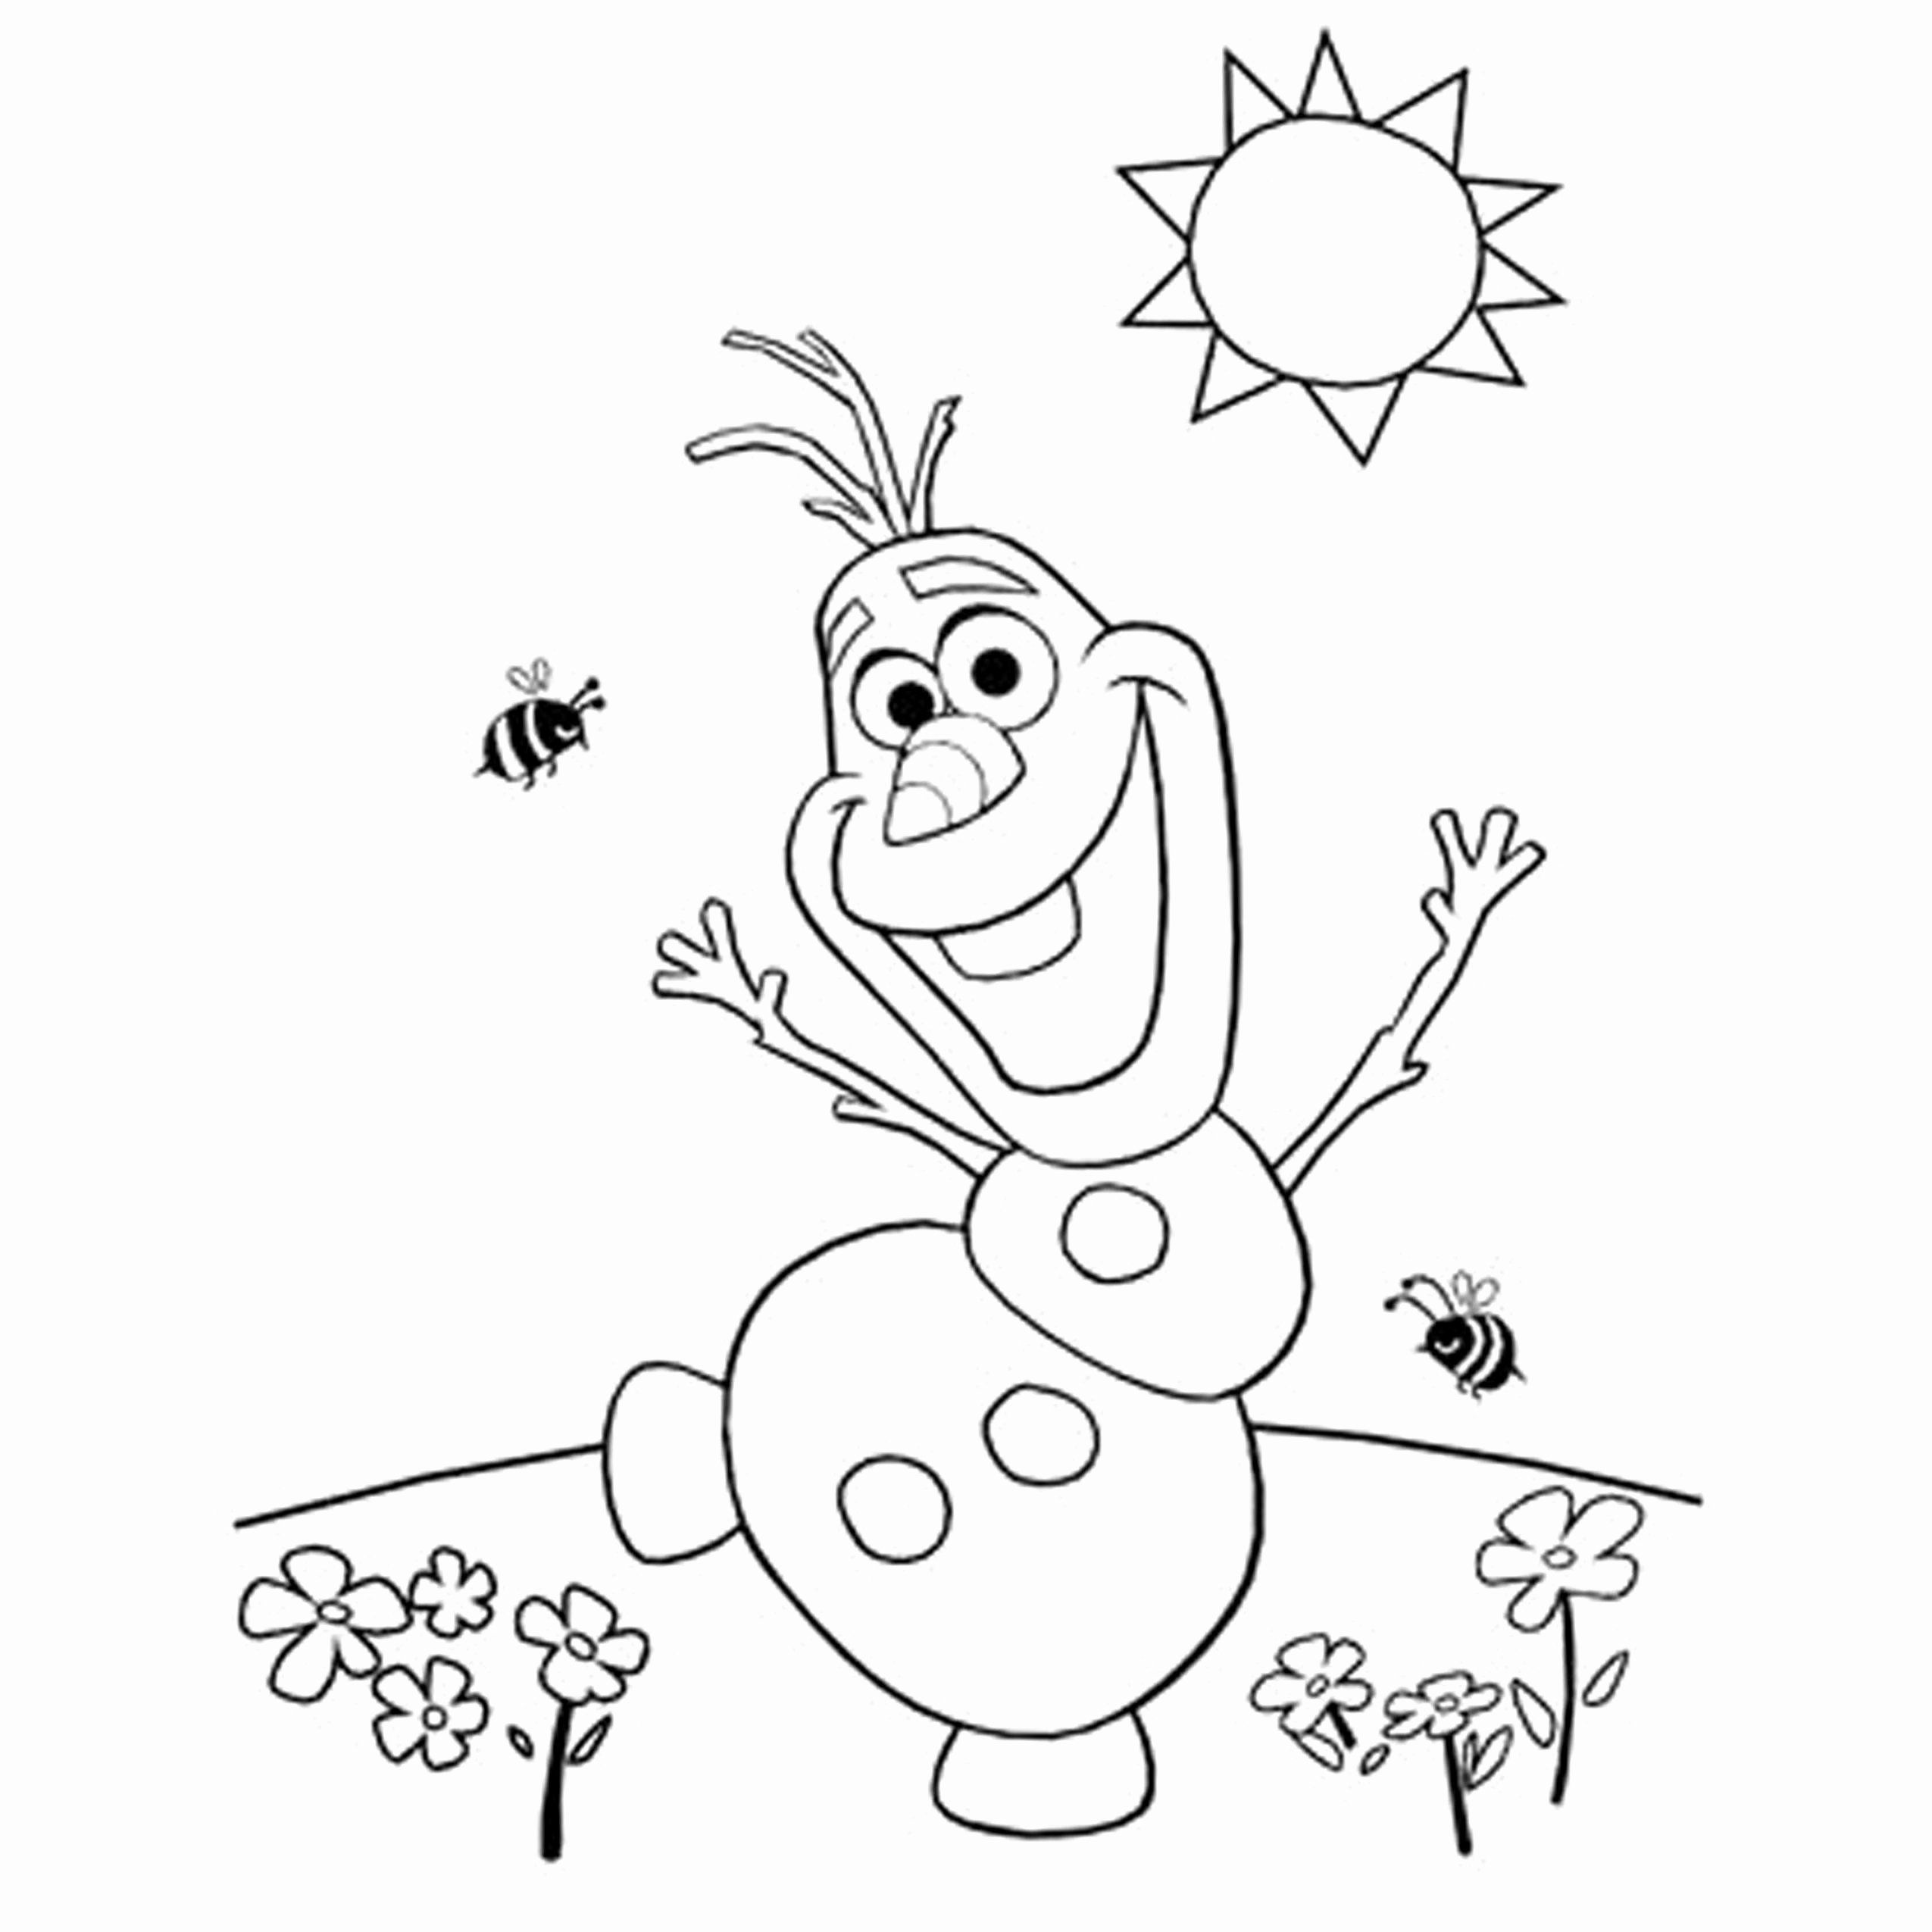 Frozen Printables Coloring Pages Beautiful Free Frozen Coloring Pages Halaman Mewarnai Buku Mewarnai Lembar Mewarnai